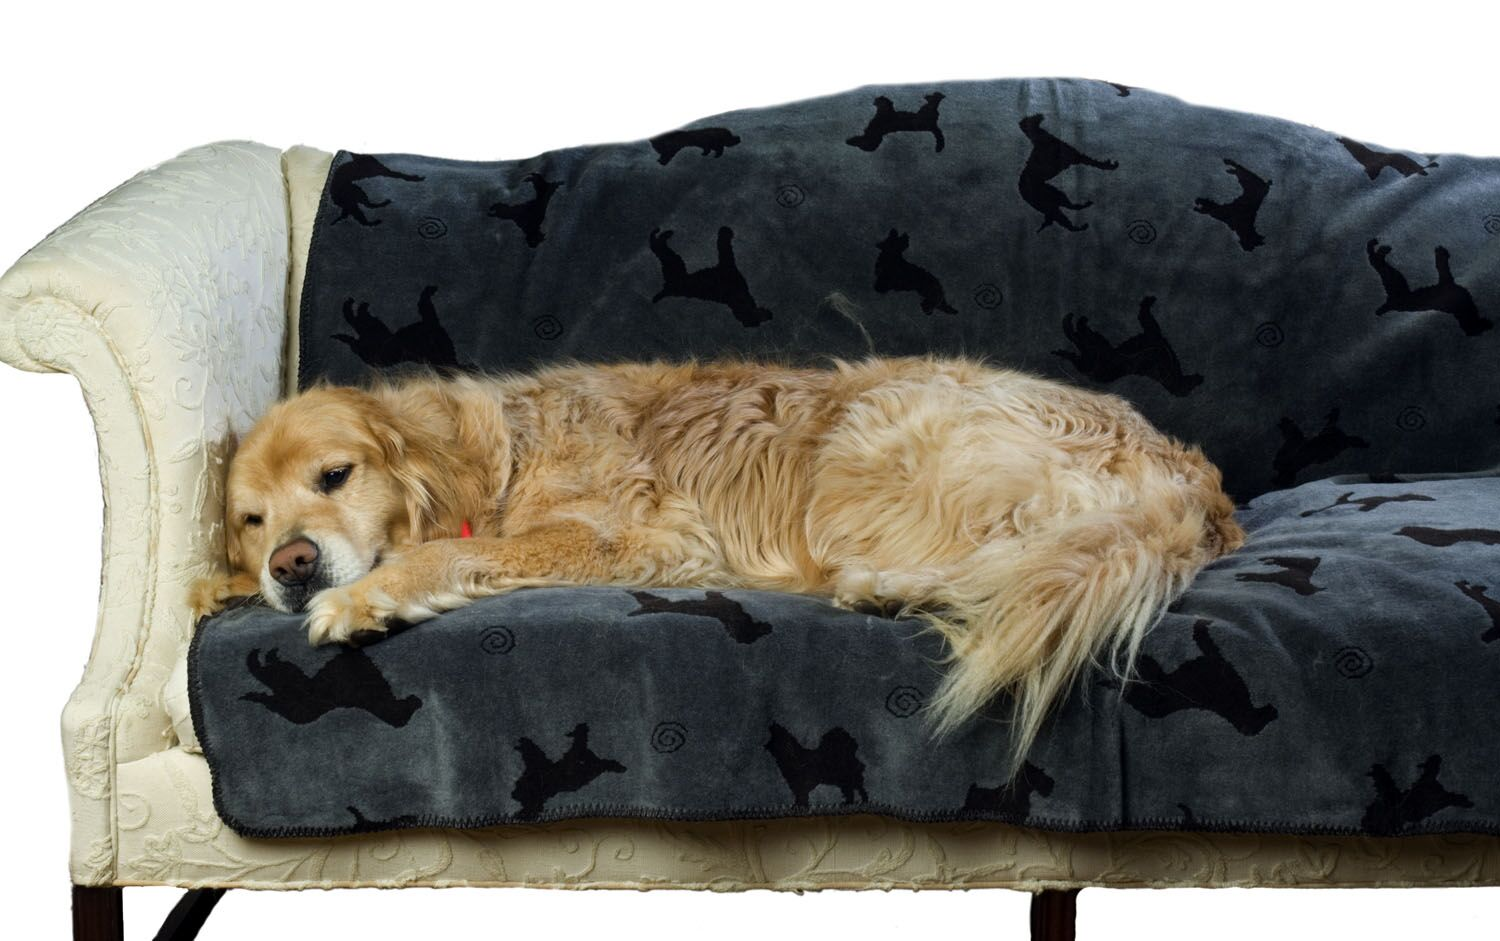 Arley Plush Embossed Dog Throw Blanket in Charcoal Size: X-Large